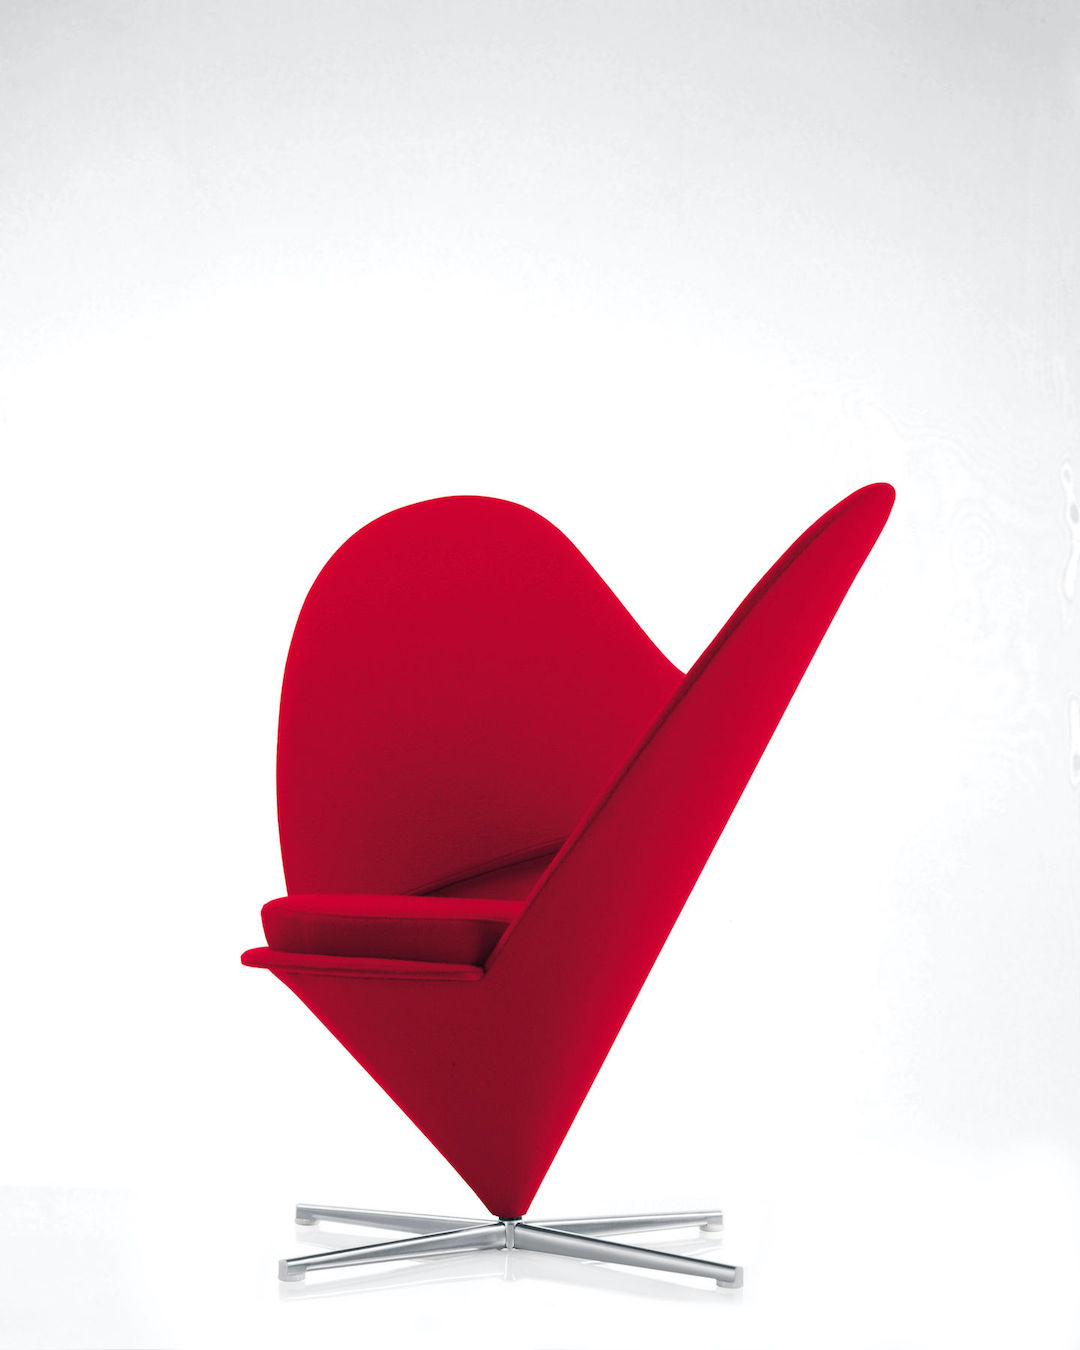 Verner Panton's Heart Cone Chair